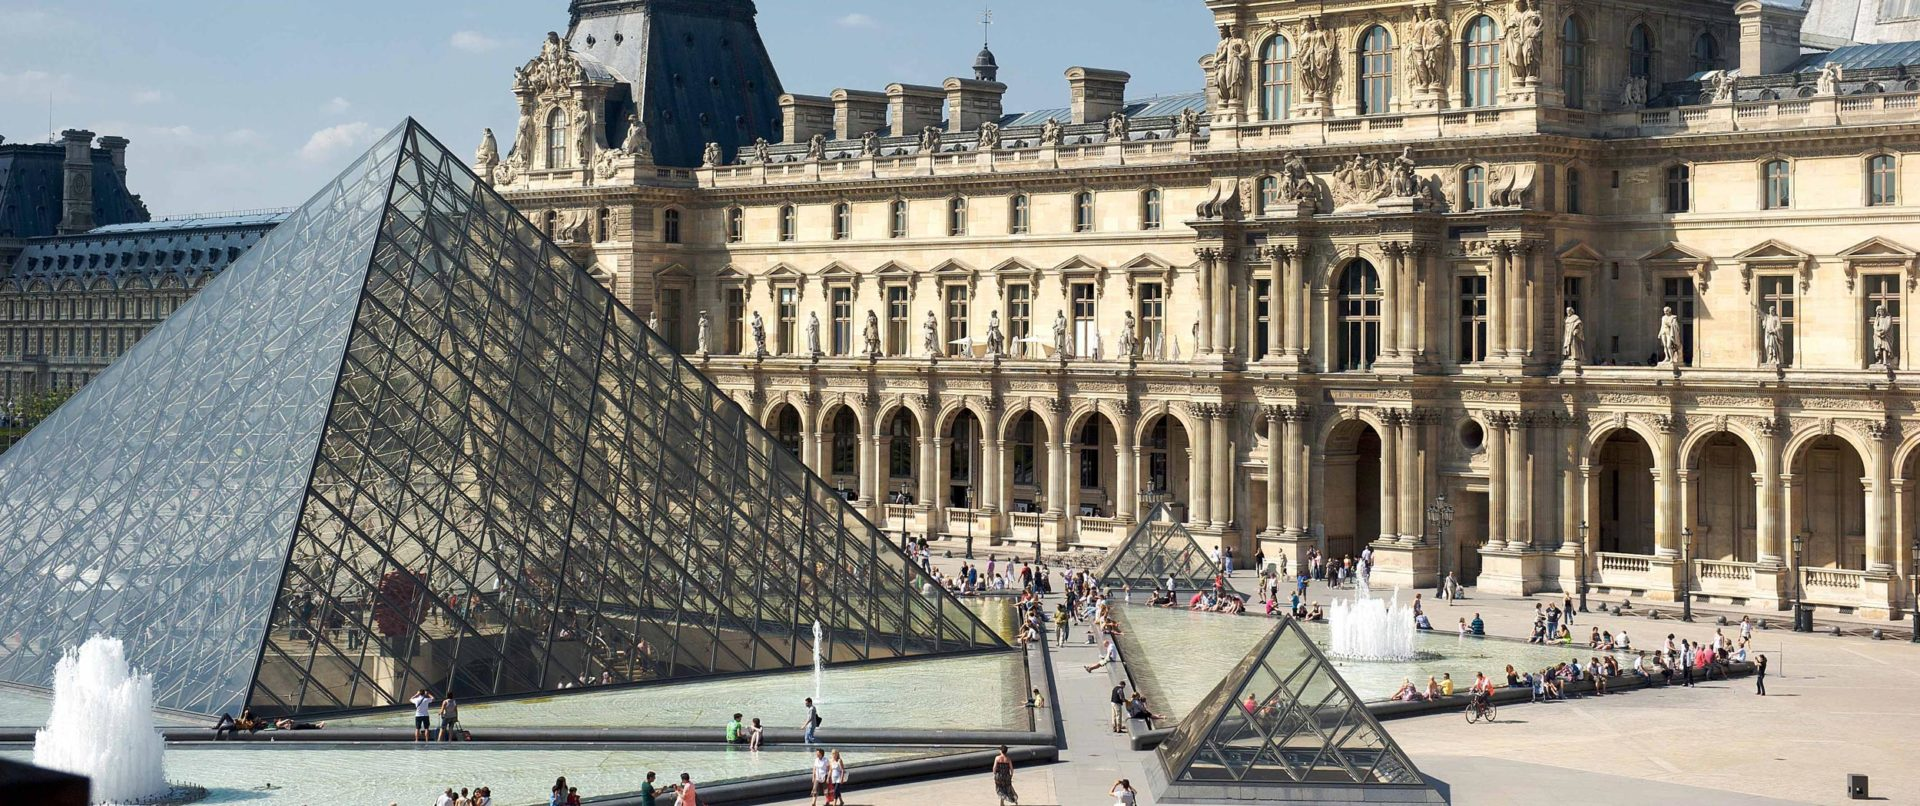 louvre-treasure-hunt-eiffel-tower-sainte-chapelle-family-tour